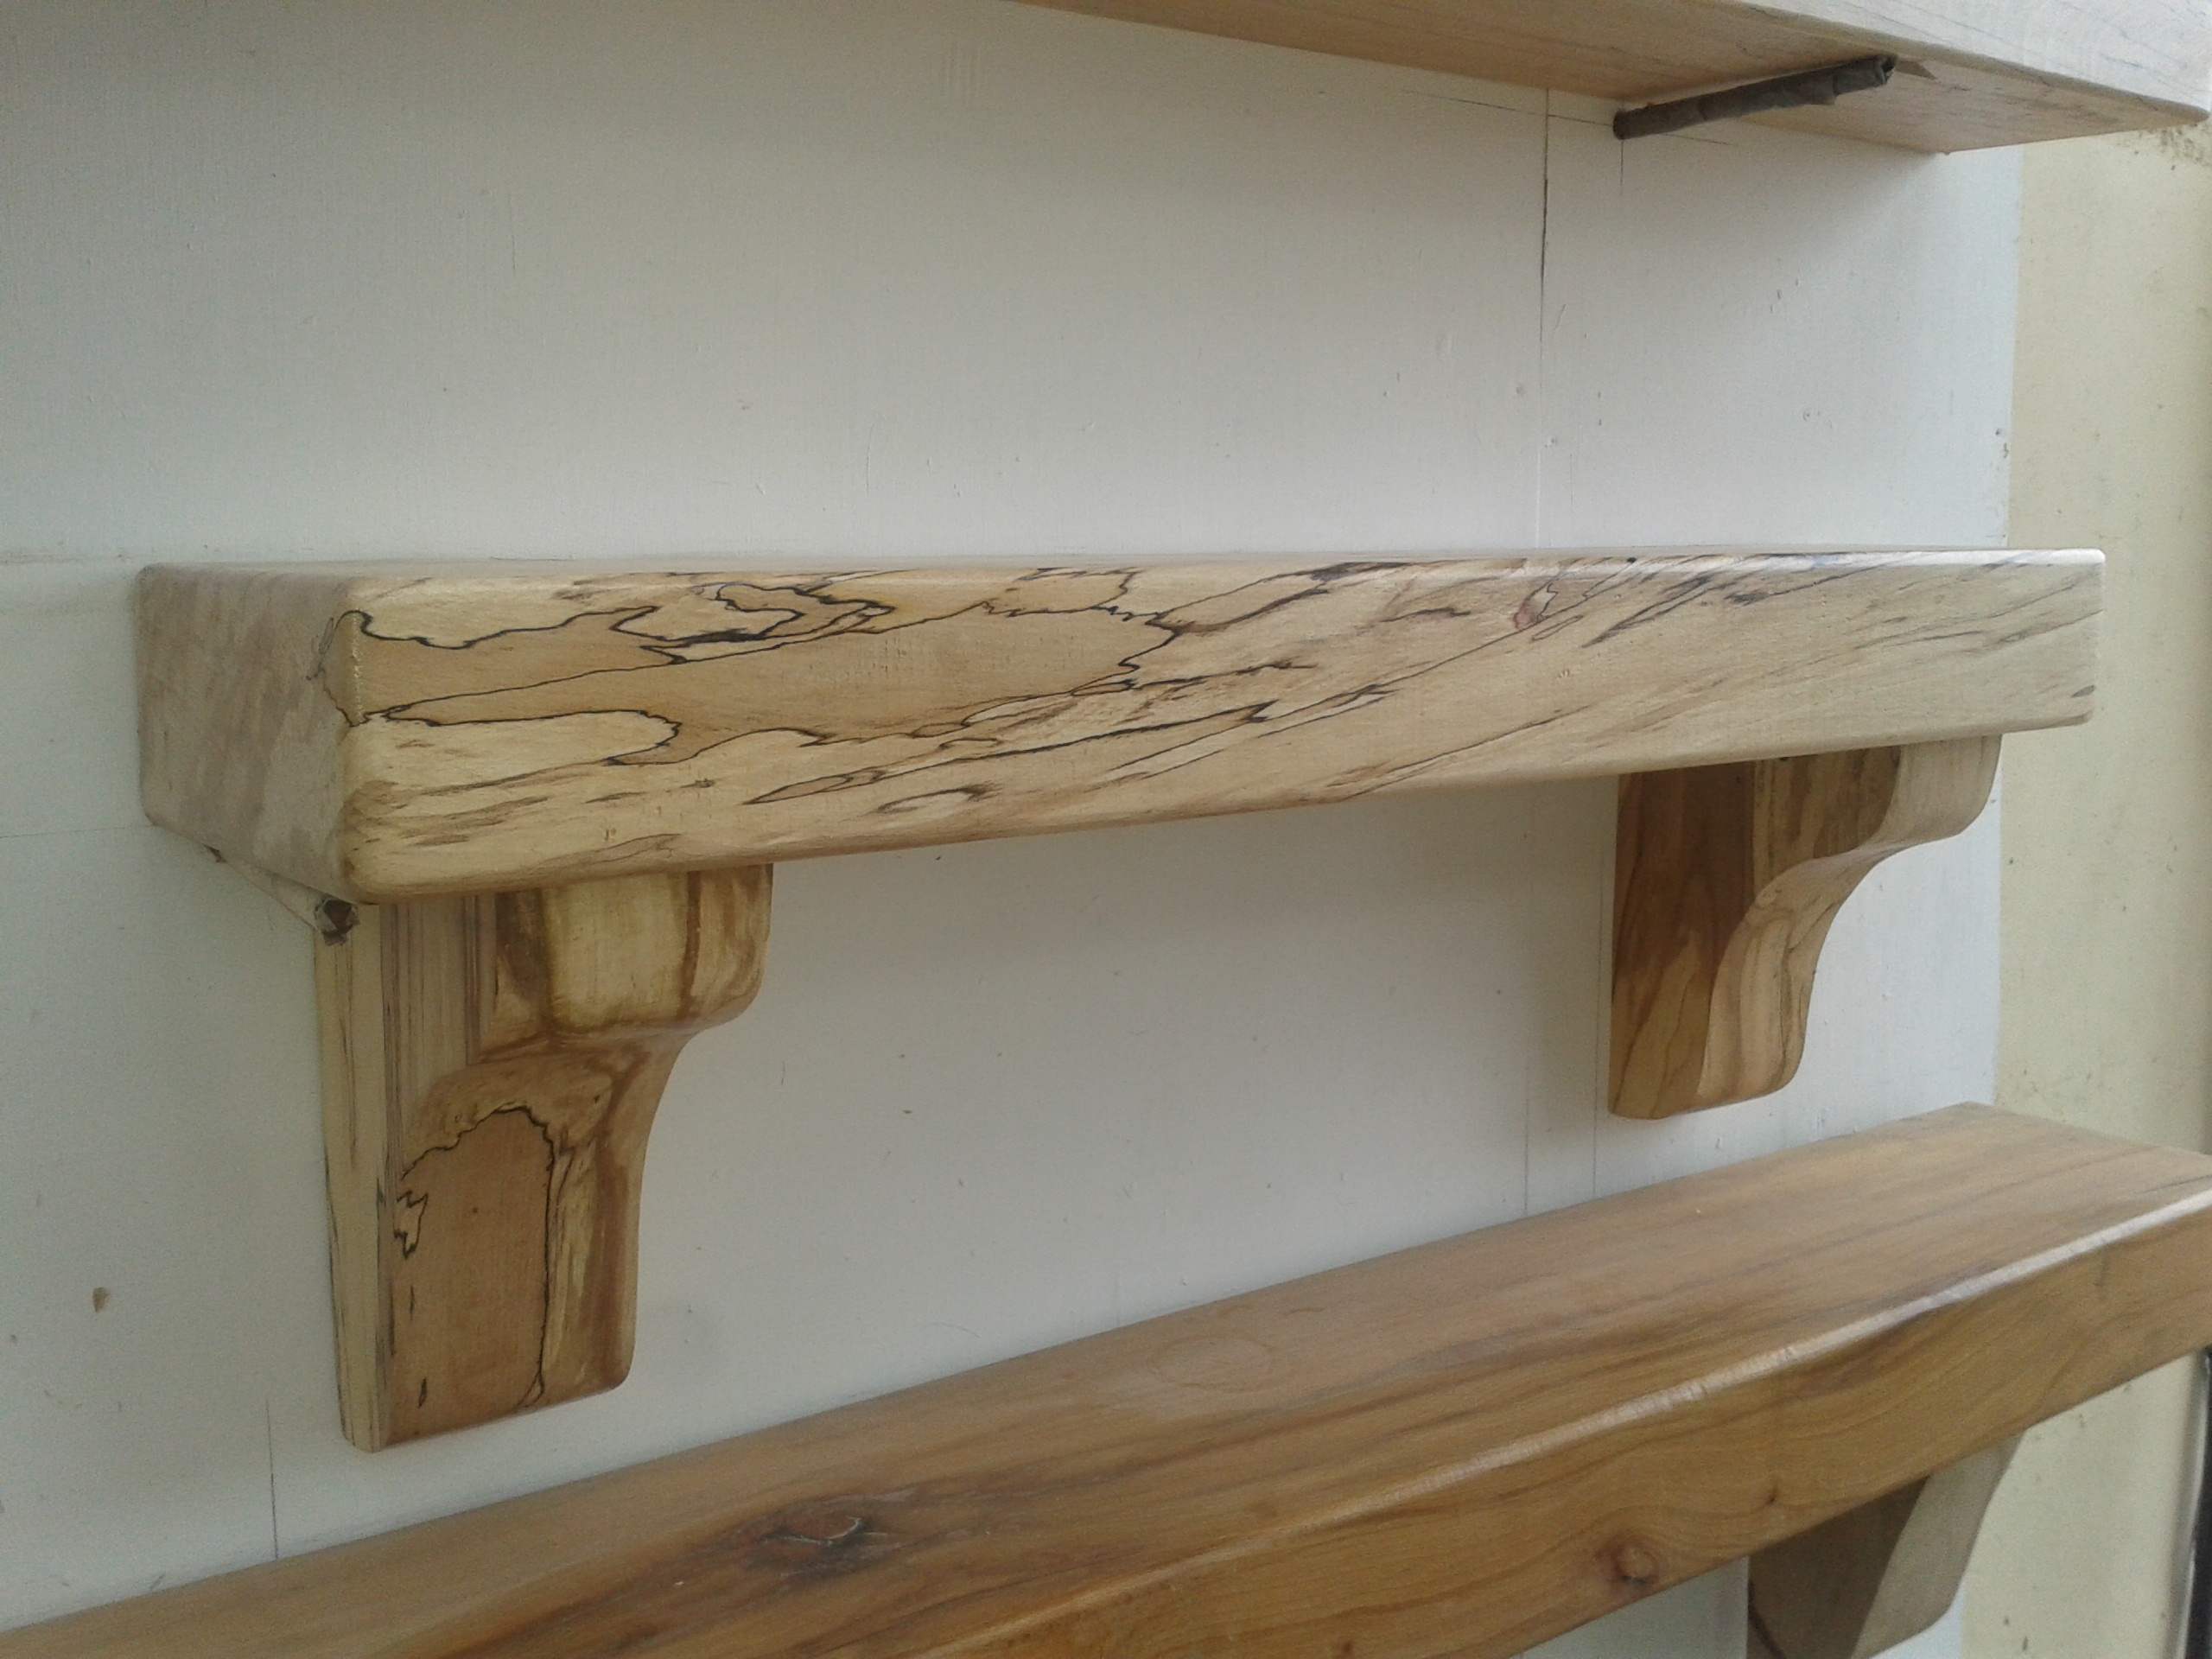 Spalted Beech Wood ~ Ft spalted beech mantel from left coole fencing